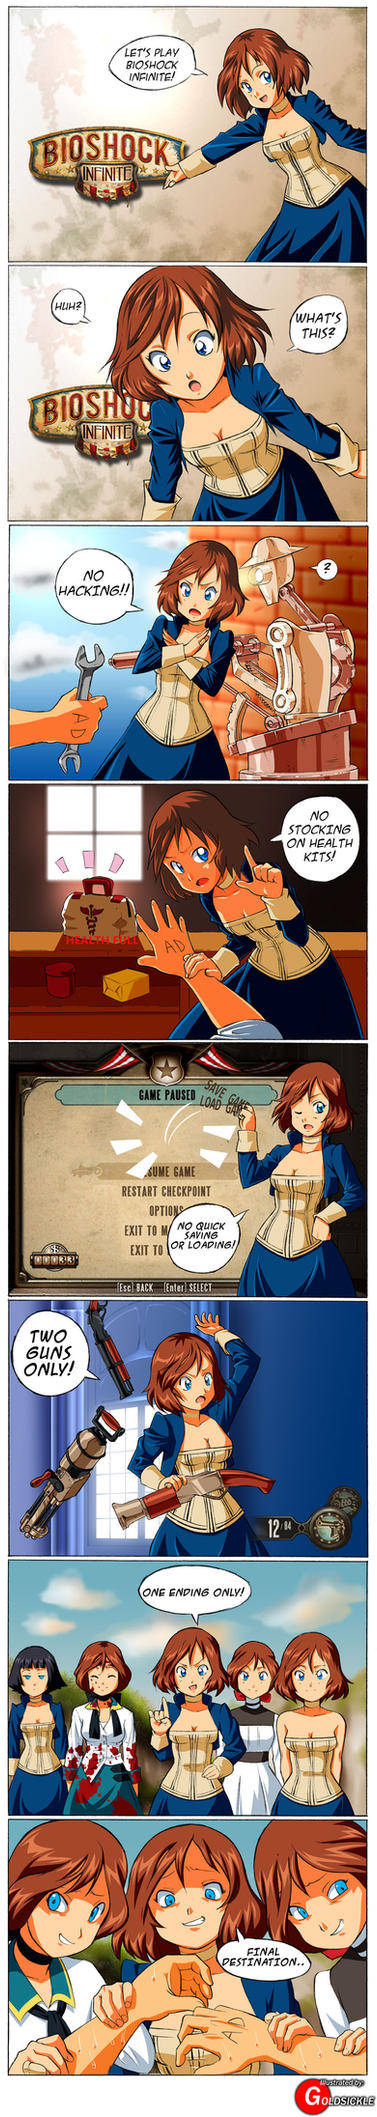 Bioshock Finite (CONTAINS ENDING SPOILERS) by Goldsickle